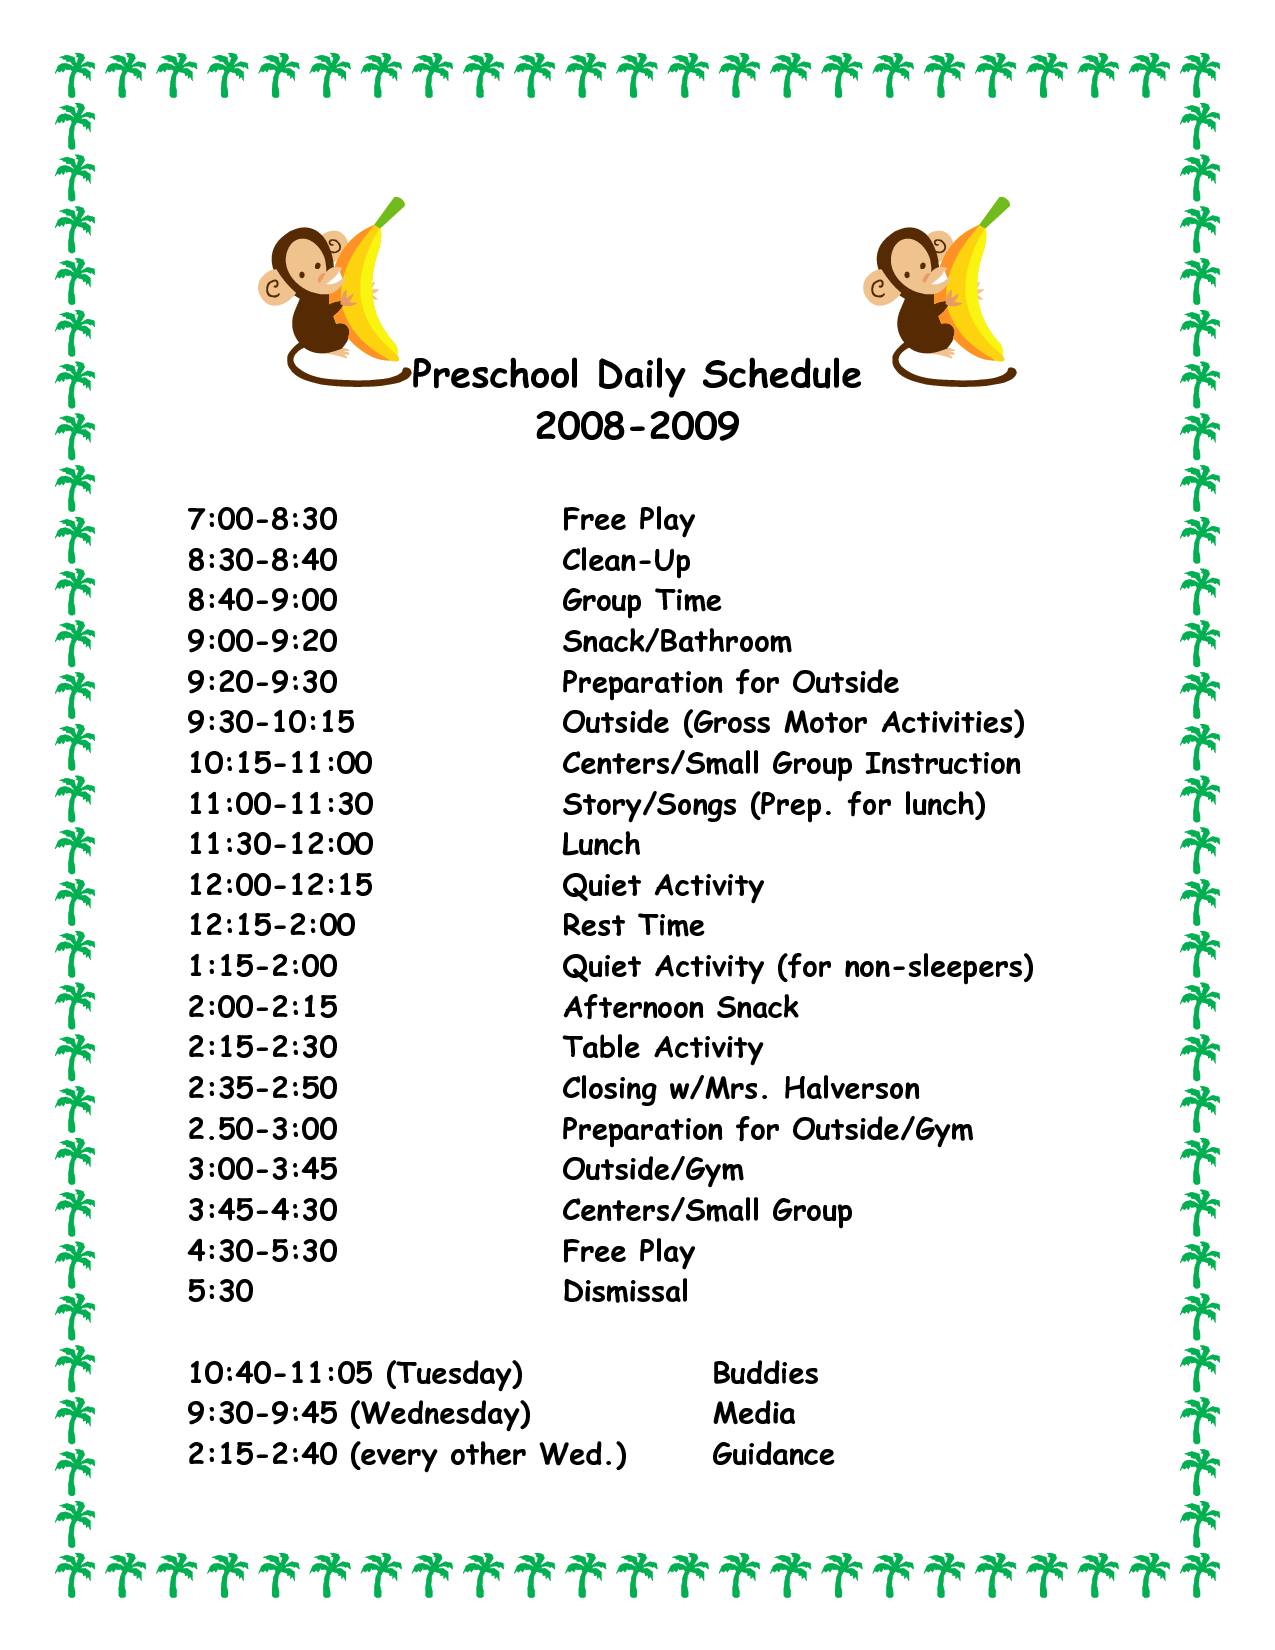 30 Images Of Printable Daily Schedule Template For Day Care